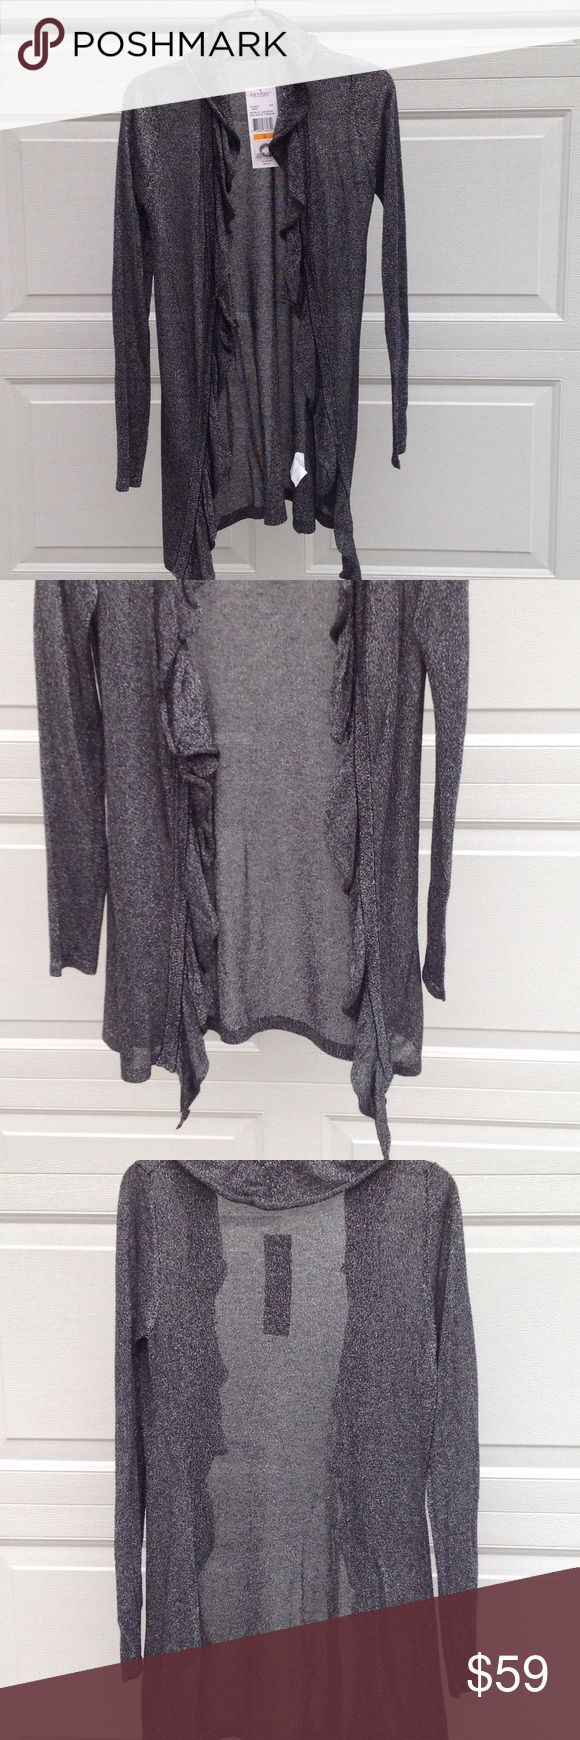 NWT KAREN KANE METALLIC SWEATER This is a sparkly black and silver cardigan. It's in perfect condition with no picks or snags. It has hook closure about half way down. It is made of rayon and polyester. Looks sexy with jeans or great with something dressy. Karen Kane Sweaters Cardigans